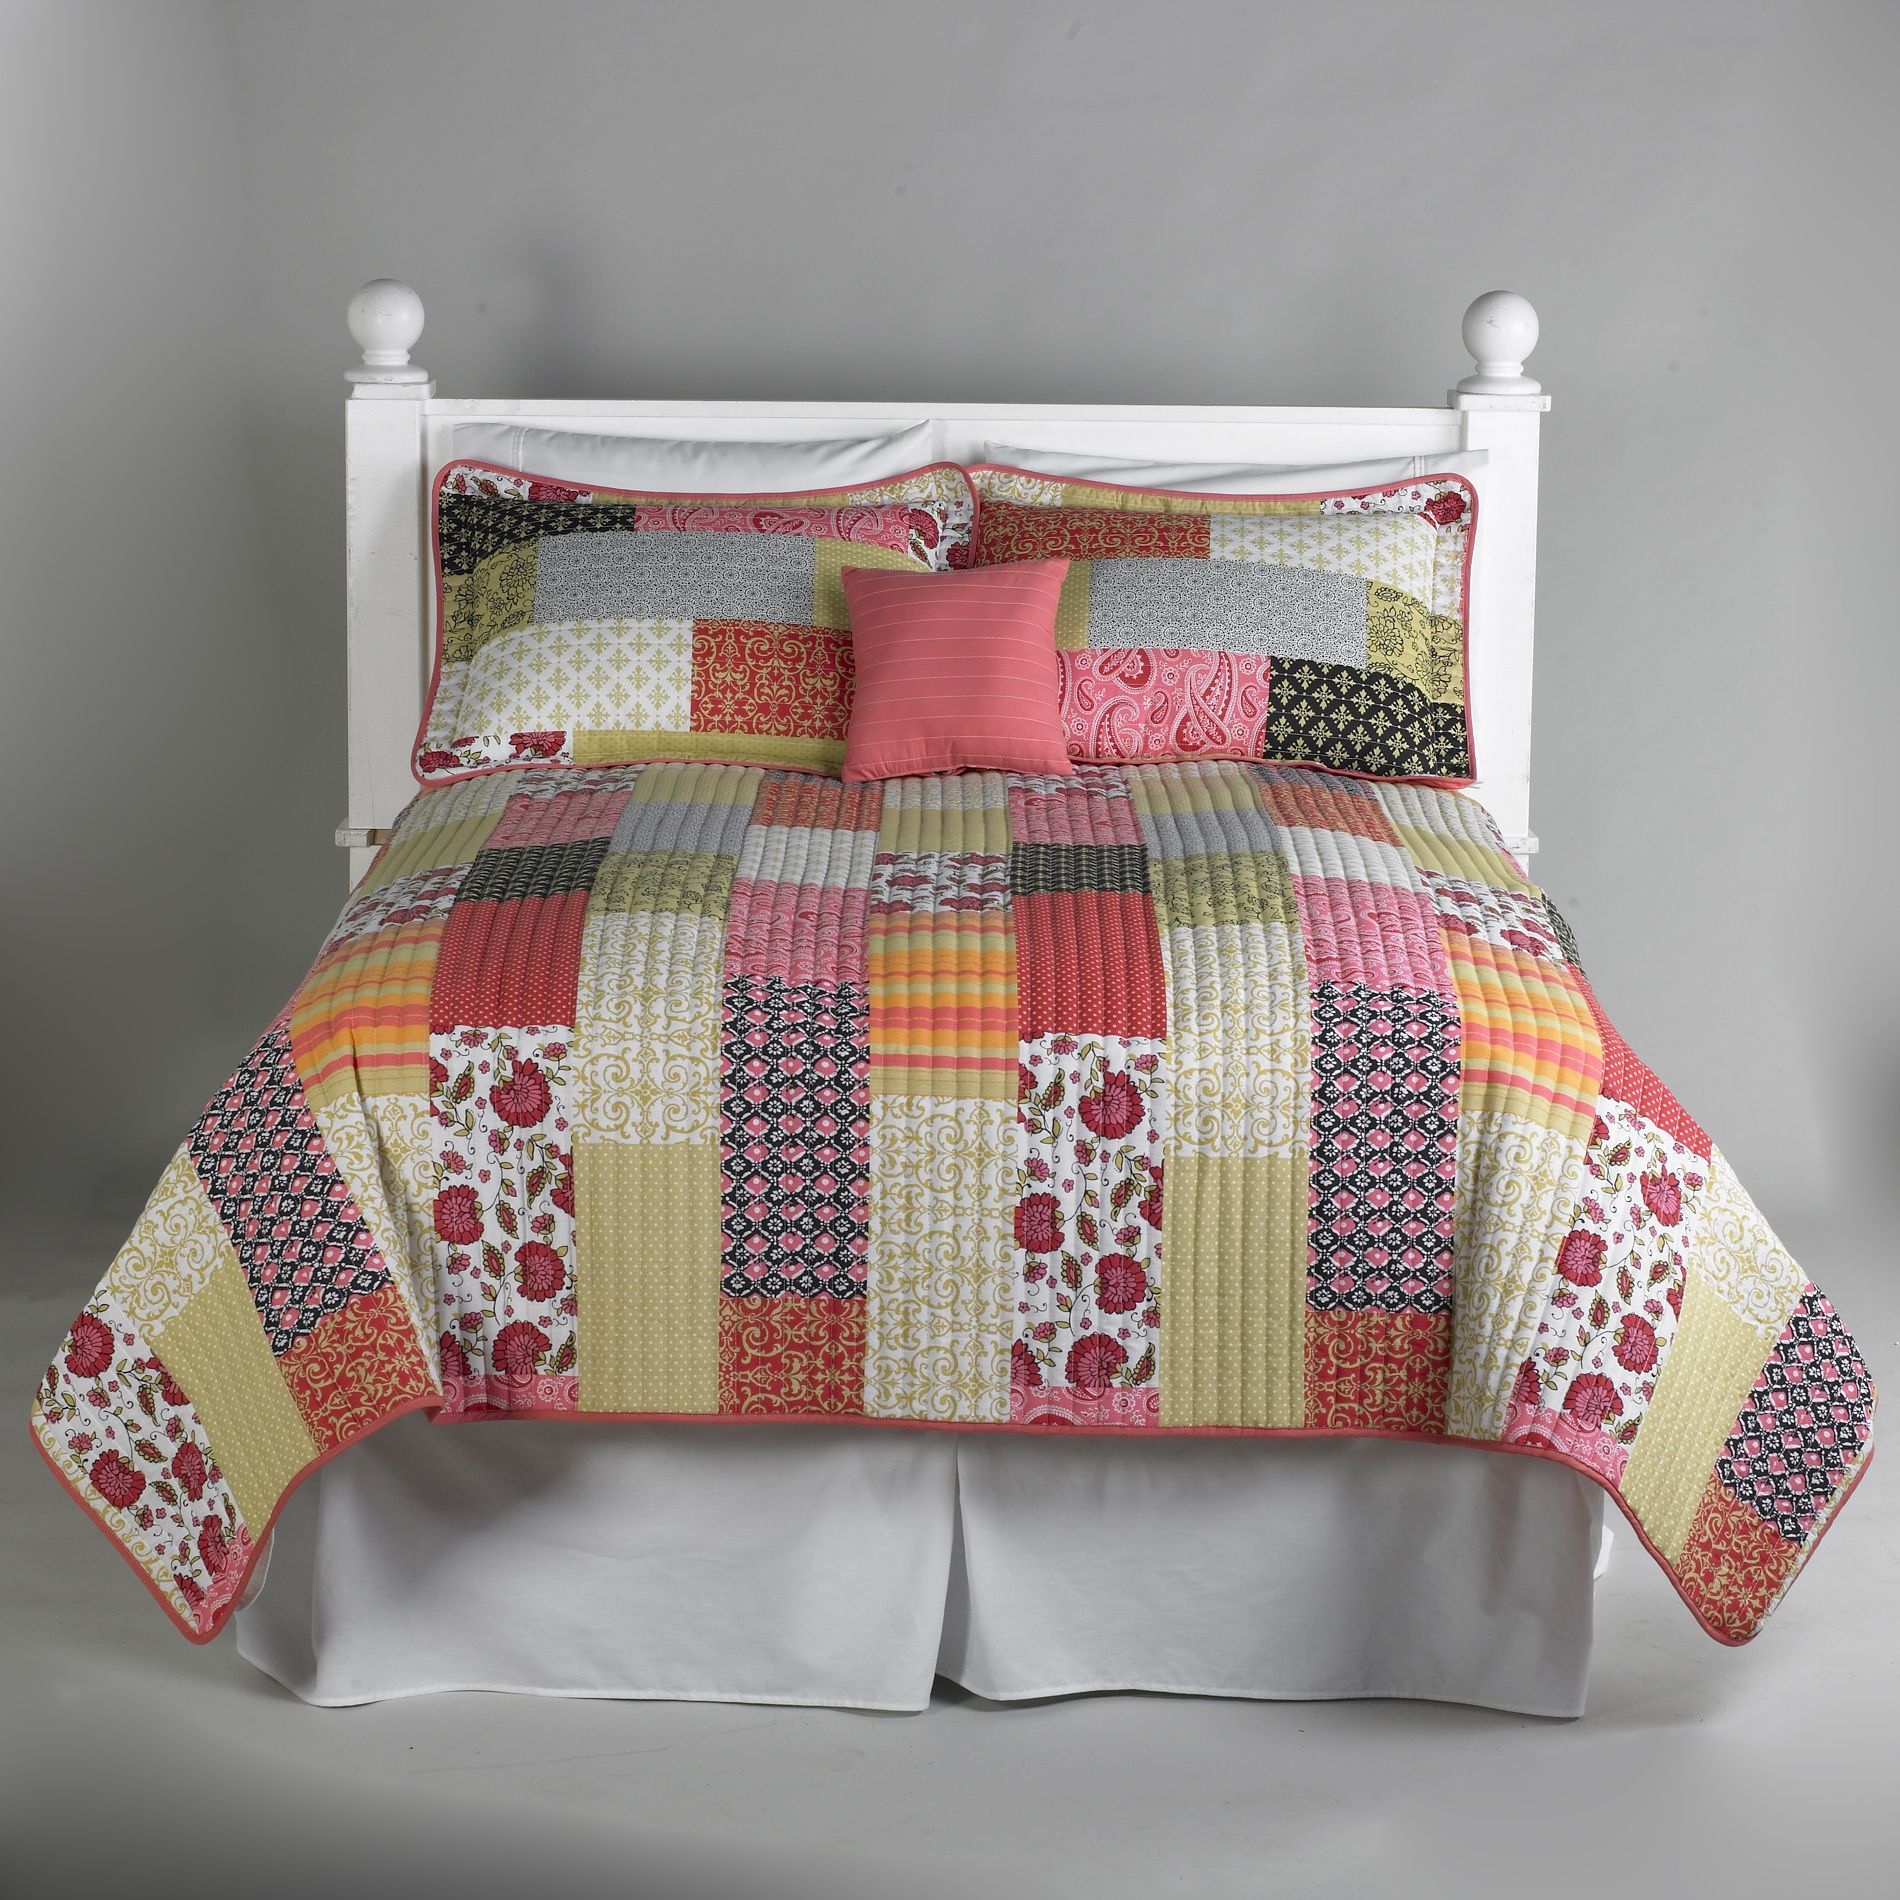 Essential Home Coral Boho Patchwork Quilt 5 Piece Bedding Set